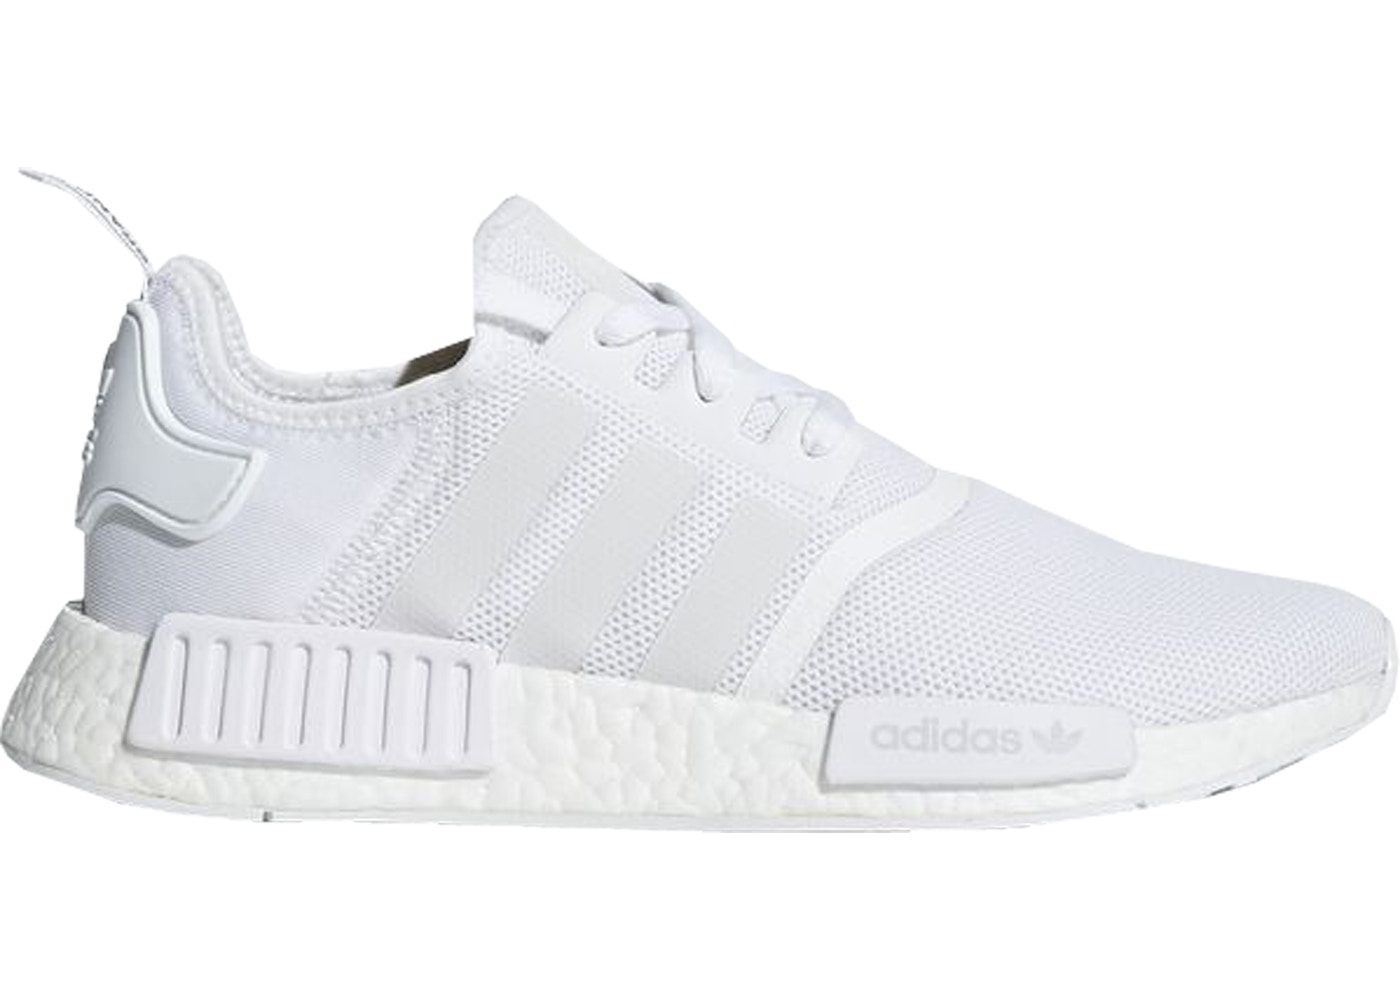 adidas nmd r1 footwear white trace grey. Black Bedroom Furniture Sets. Home Design Ideas